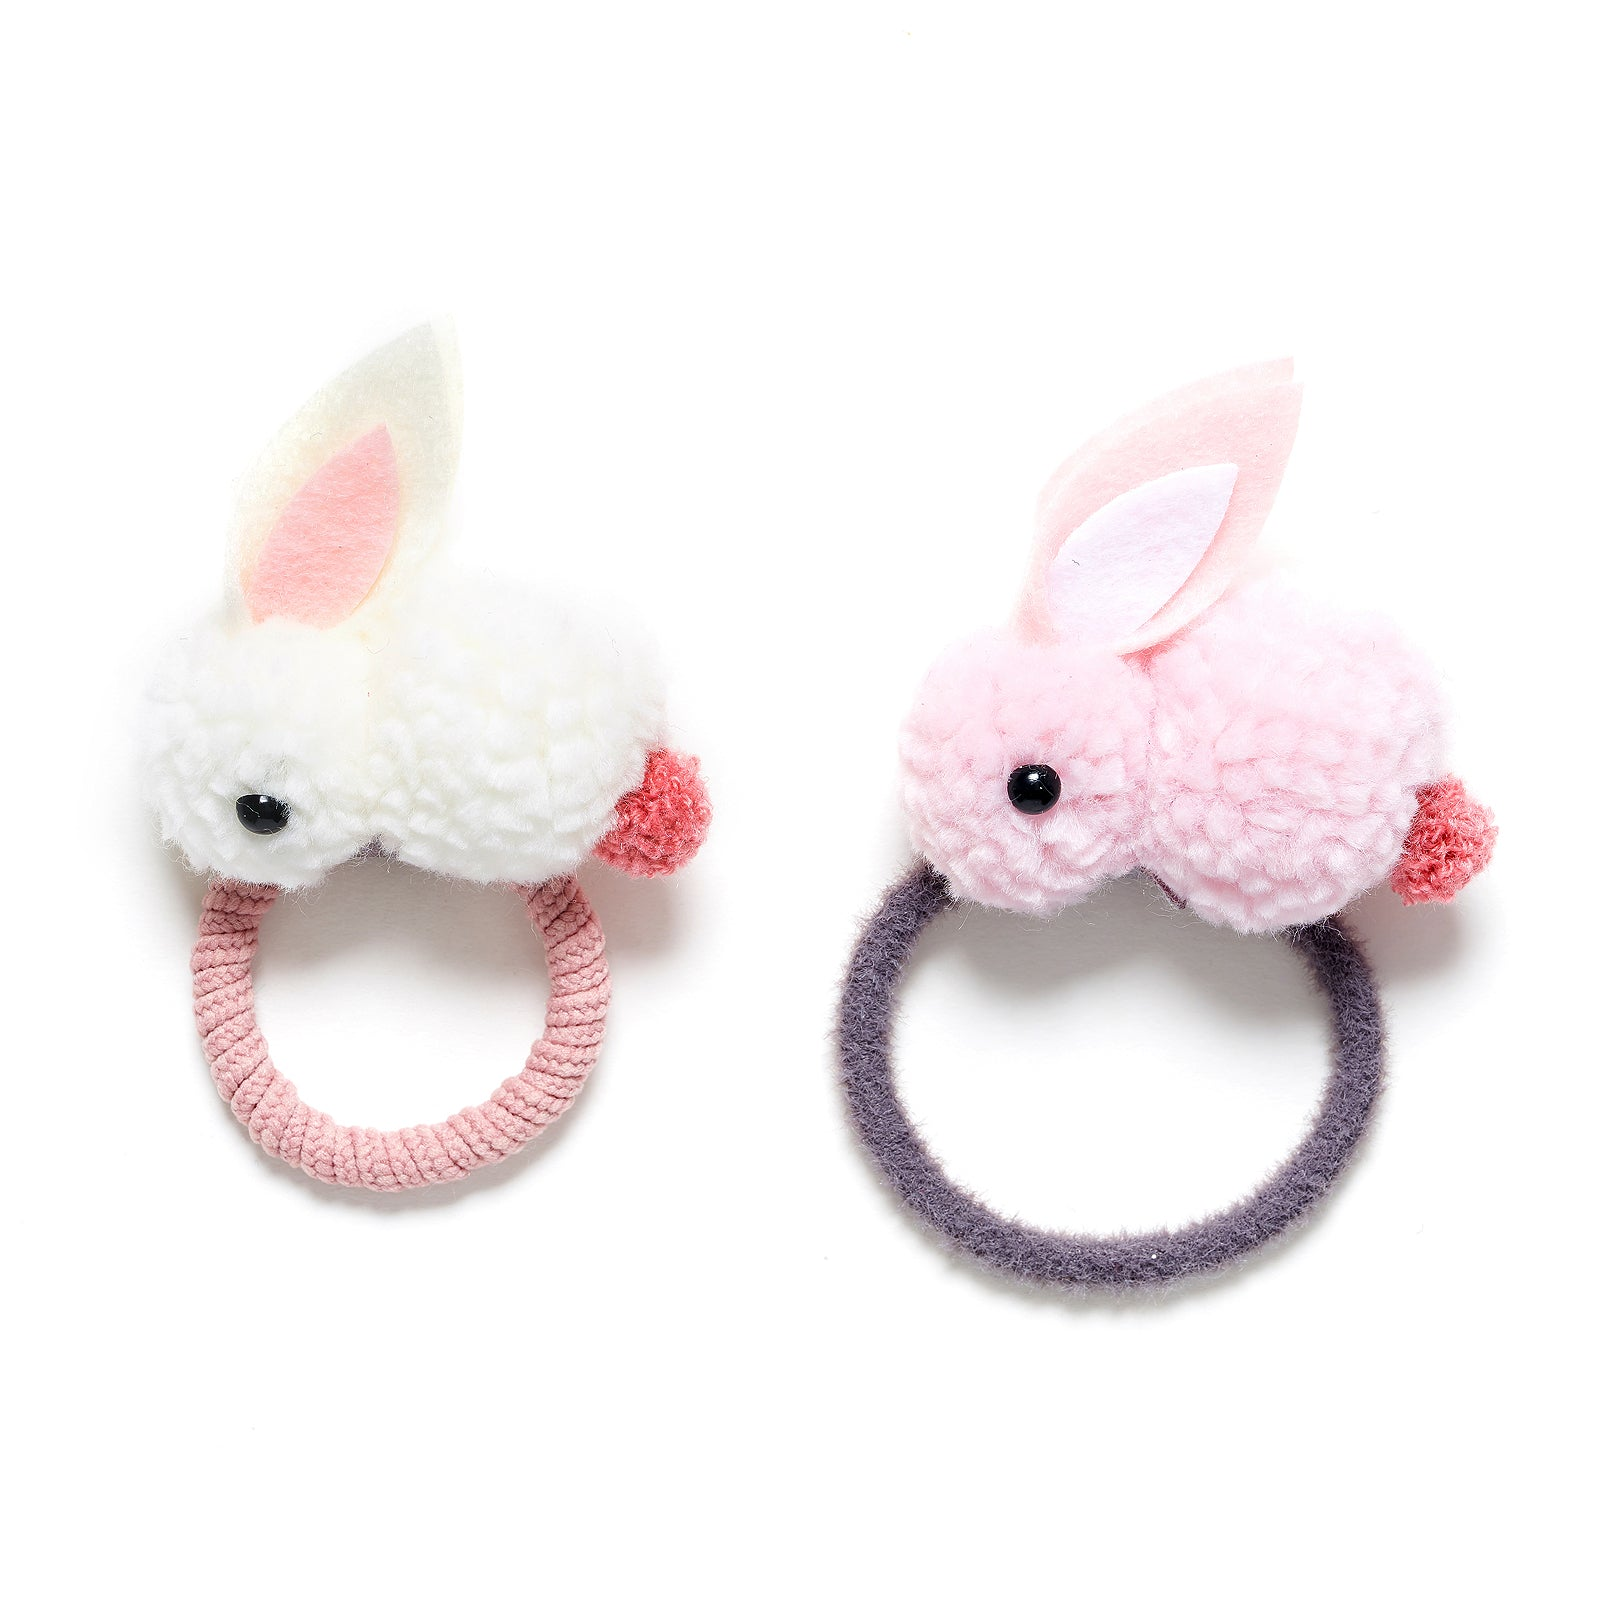 Pom pom rabbit hair tie